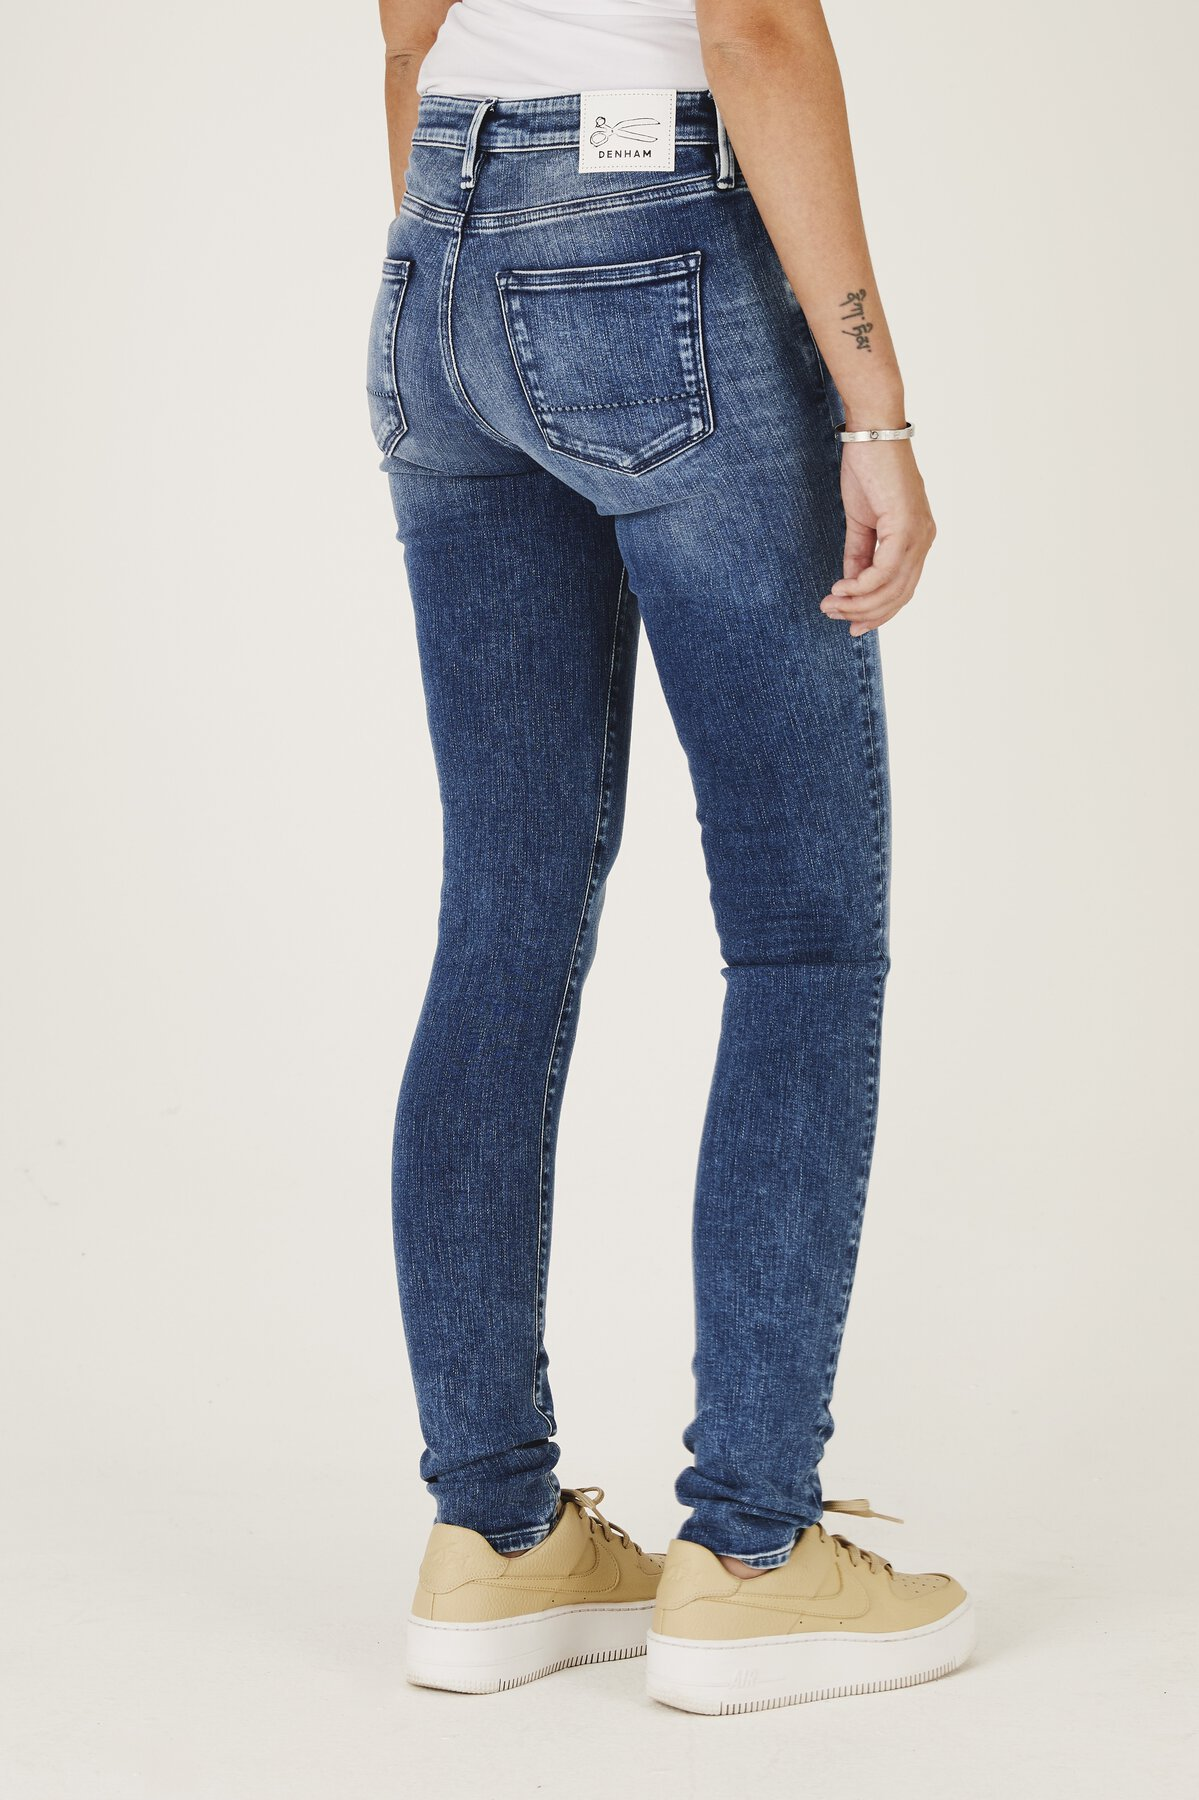 Sharp - Skinny Tight Fit Jeans - Back